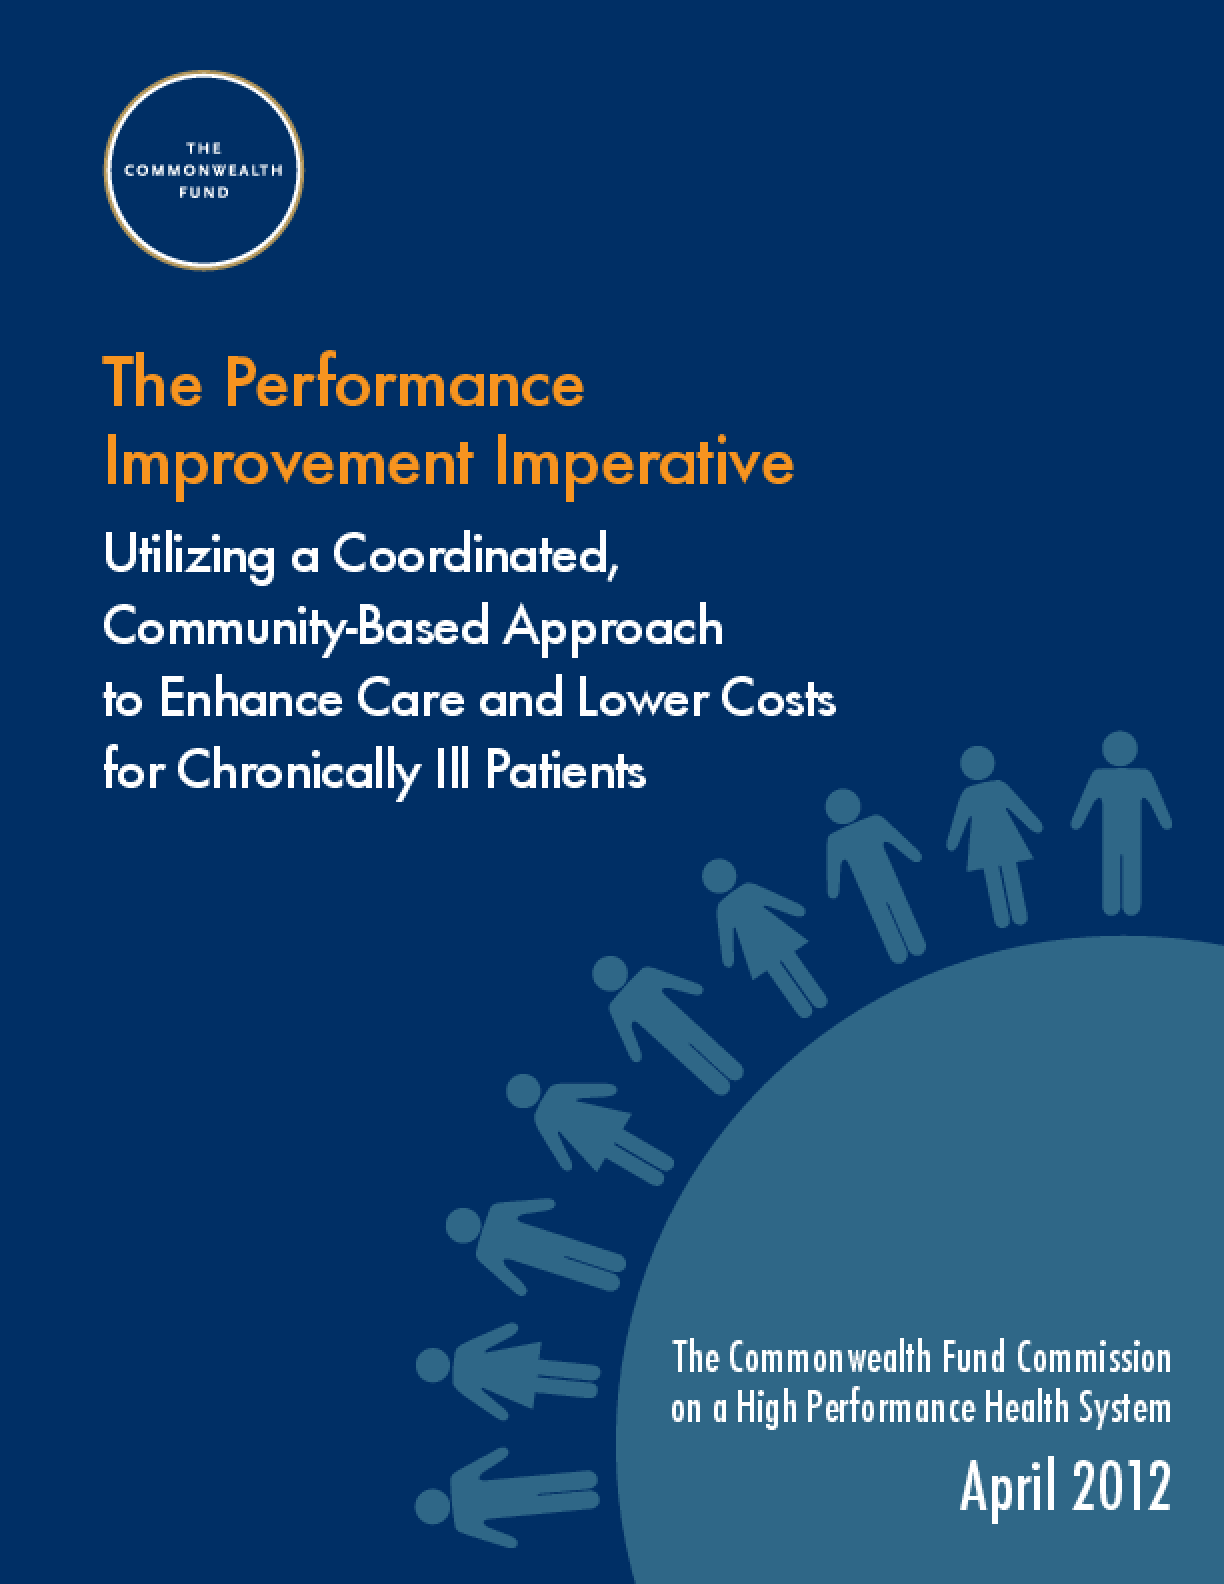 The Performance Improvement Imperative: Utilizing a Coordinated, Community-Based Approach to Enhance Care and Lower Costs for Chronically Ill Patients